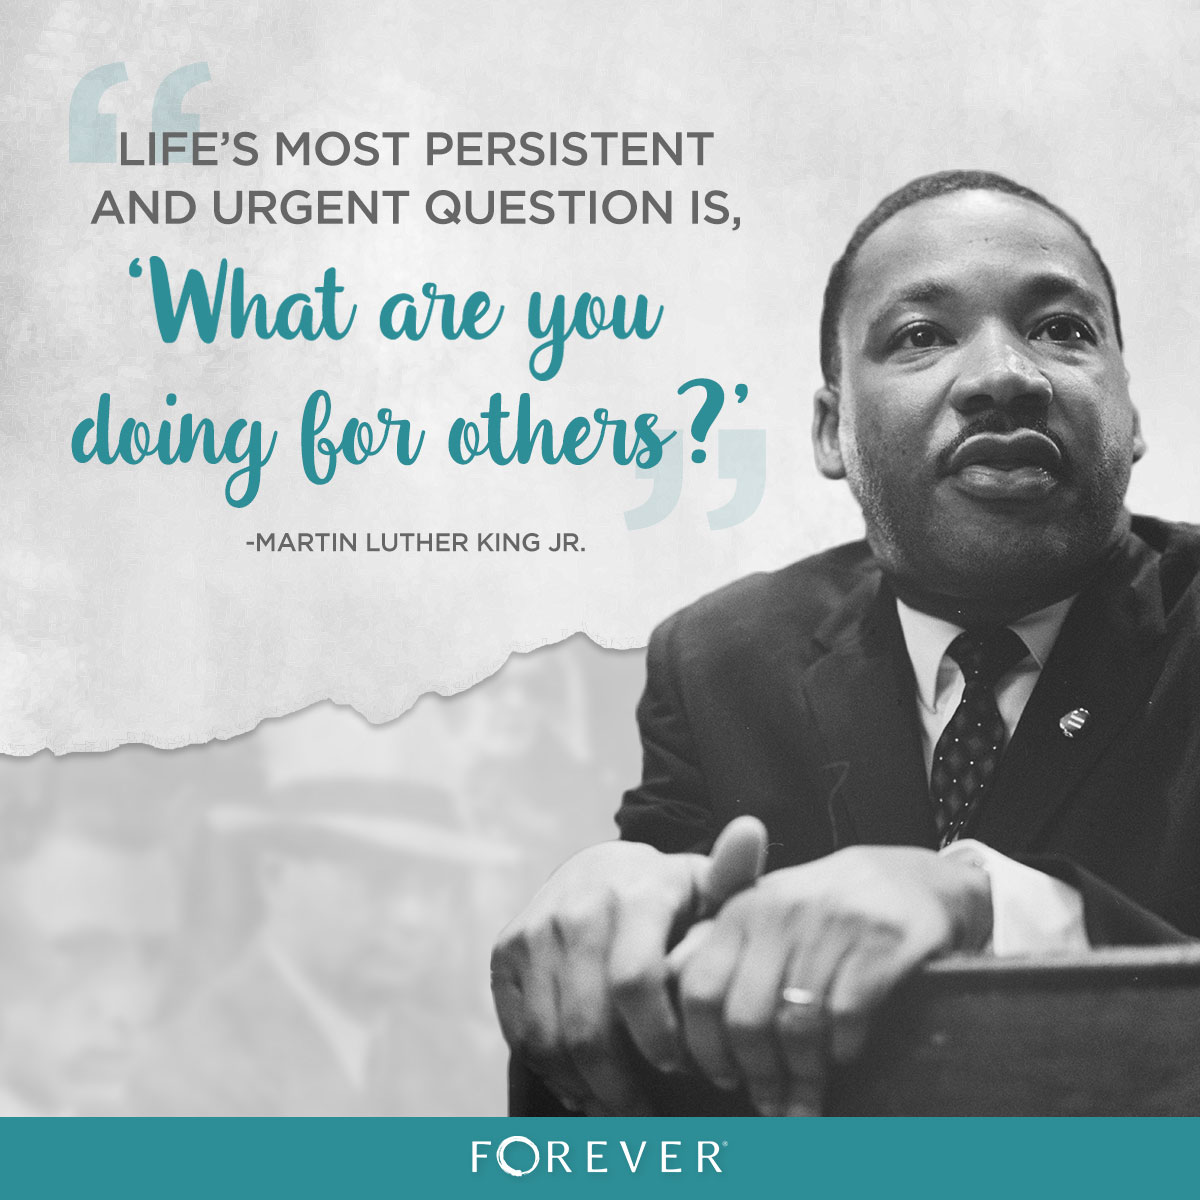 Enjoy your Martin Luther King Jr. Day - how can YOU make an impact on others?